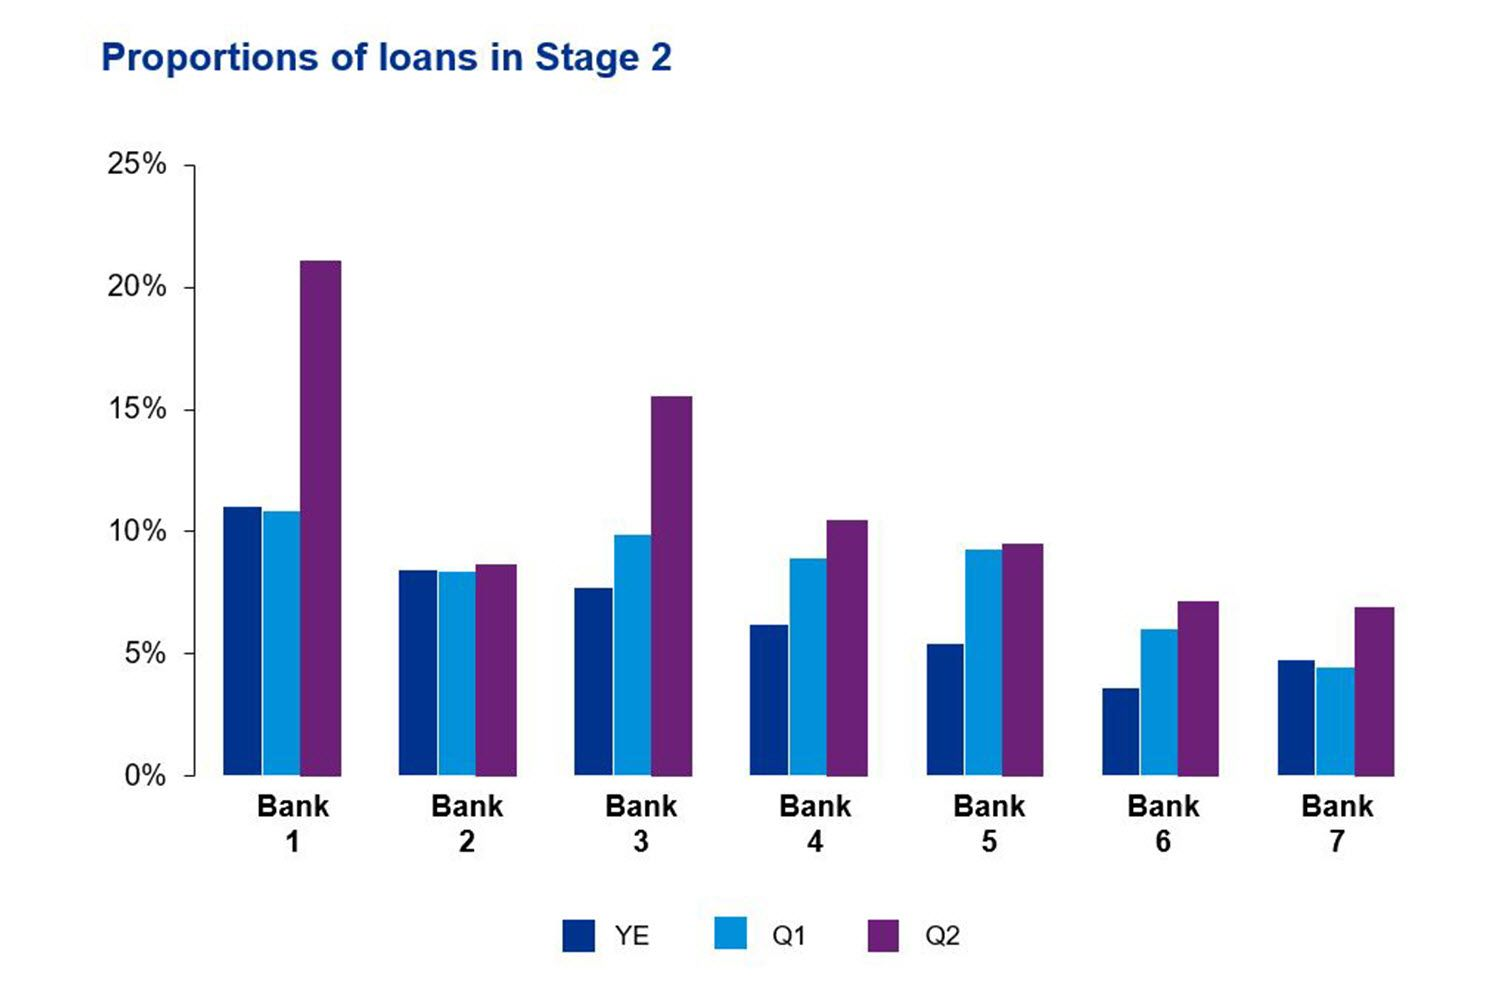 Proportions of loans in stage 2